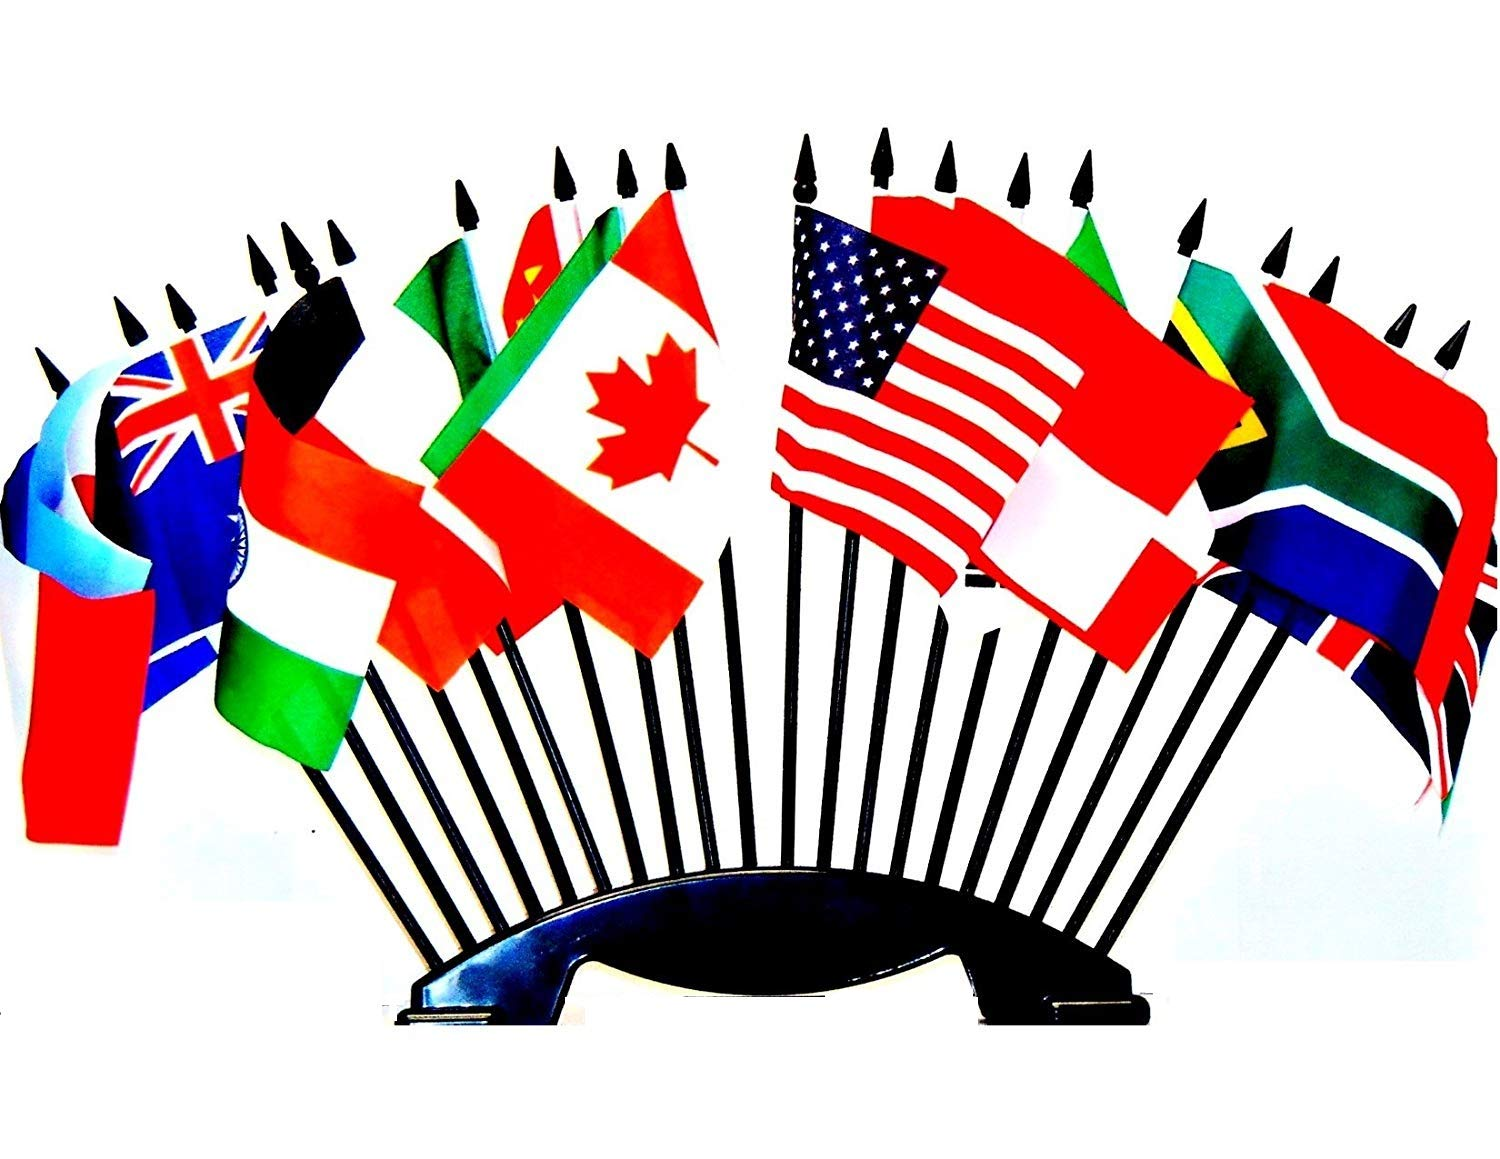 G-20 (Group of 20) World Flag Set with BASE-20 Polyester 4''x6'' Flags, One Flag for Each Country in in The G-20, 4x6 Miniature Desk & Table Flags, Small Mini Stick Flags